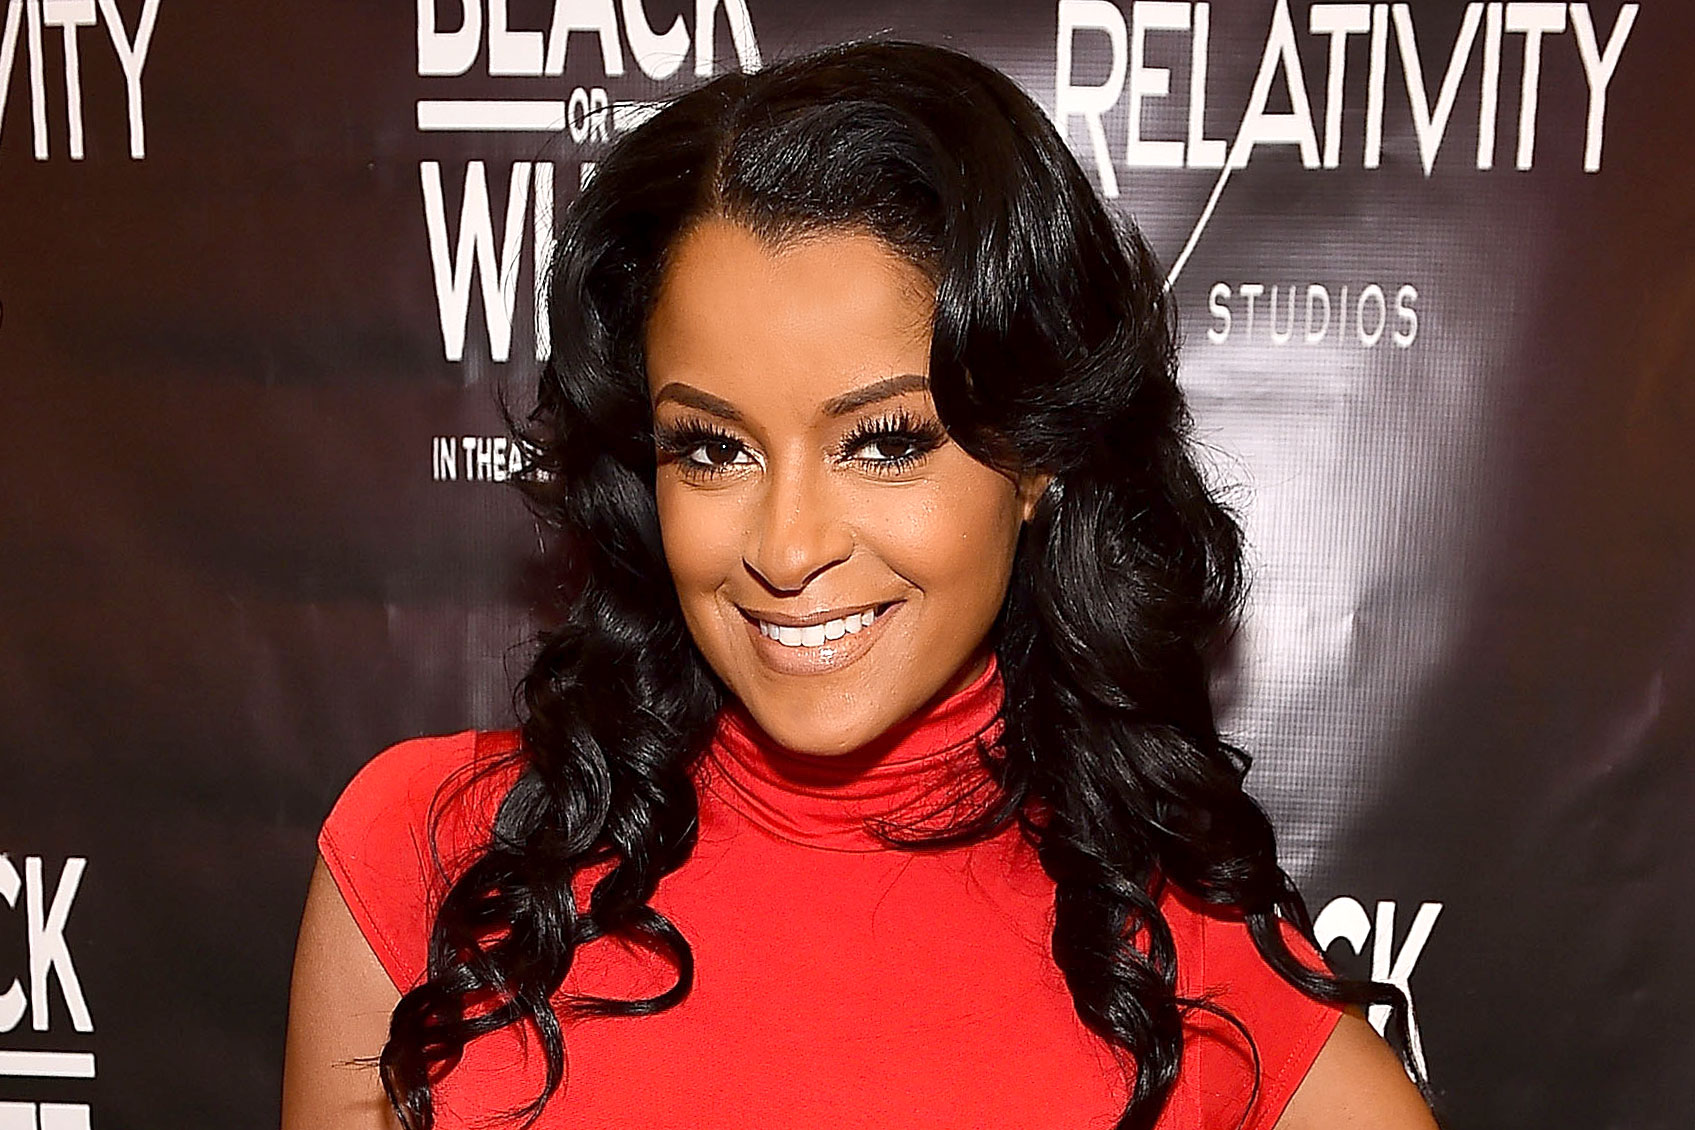 Selfie Claudia Jordan nudes (66 photo), Ass, Leaked, Boobs, cameltoe 2015